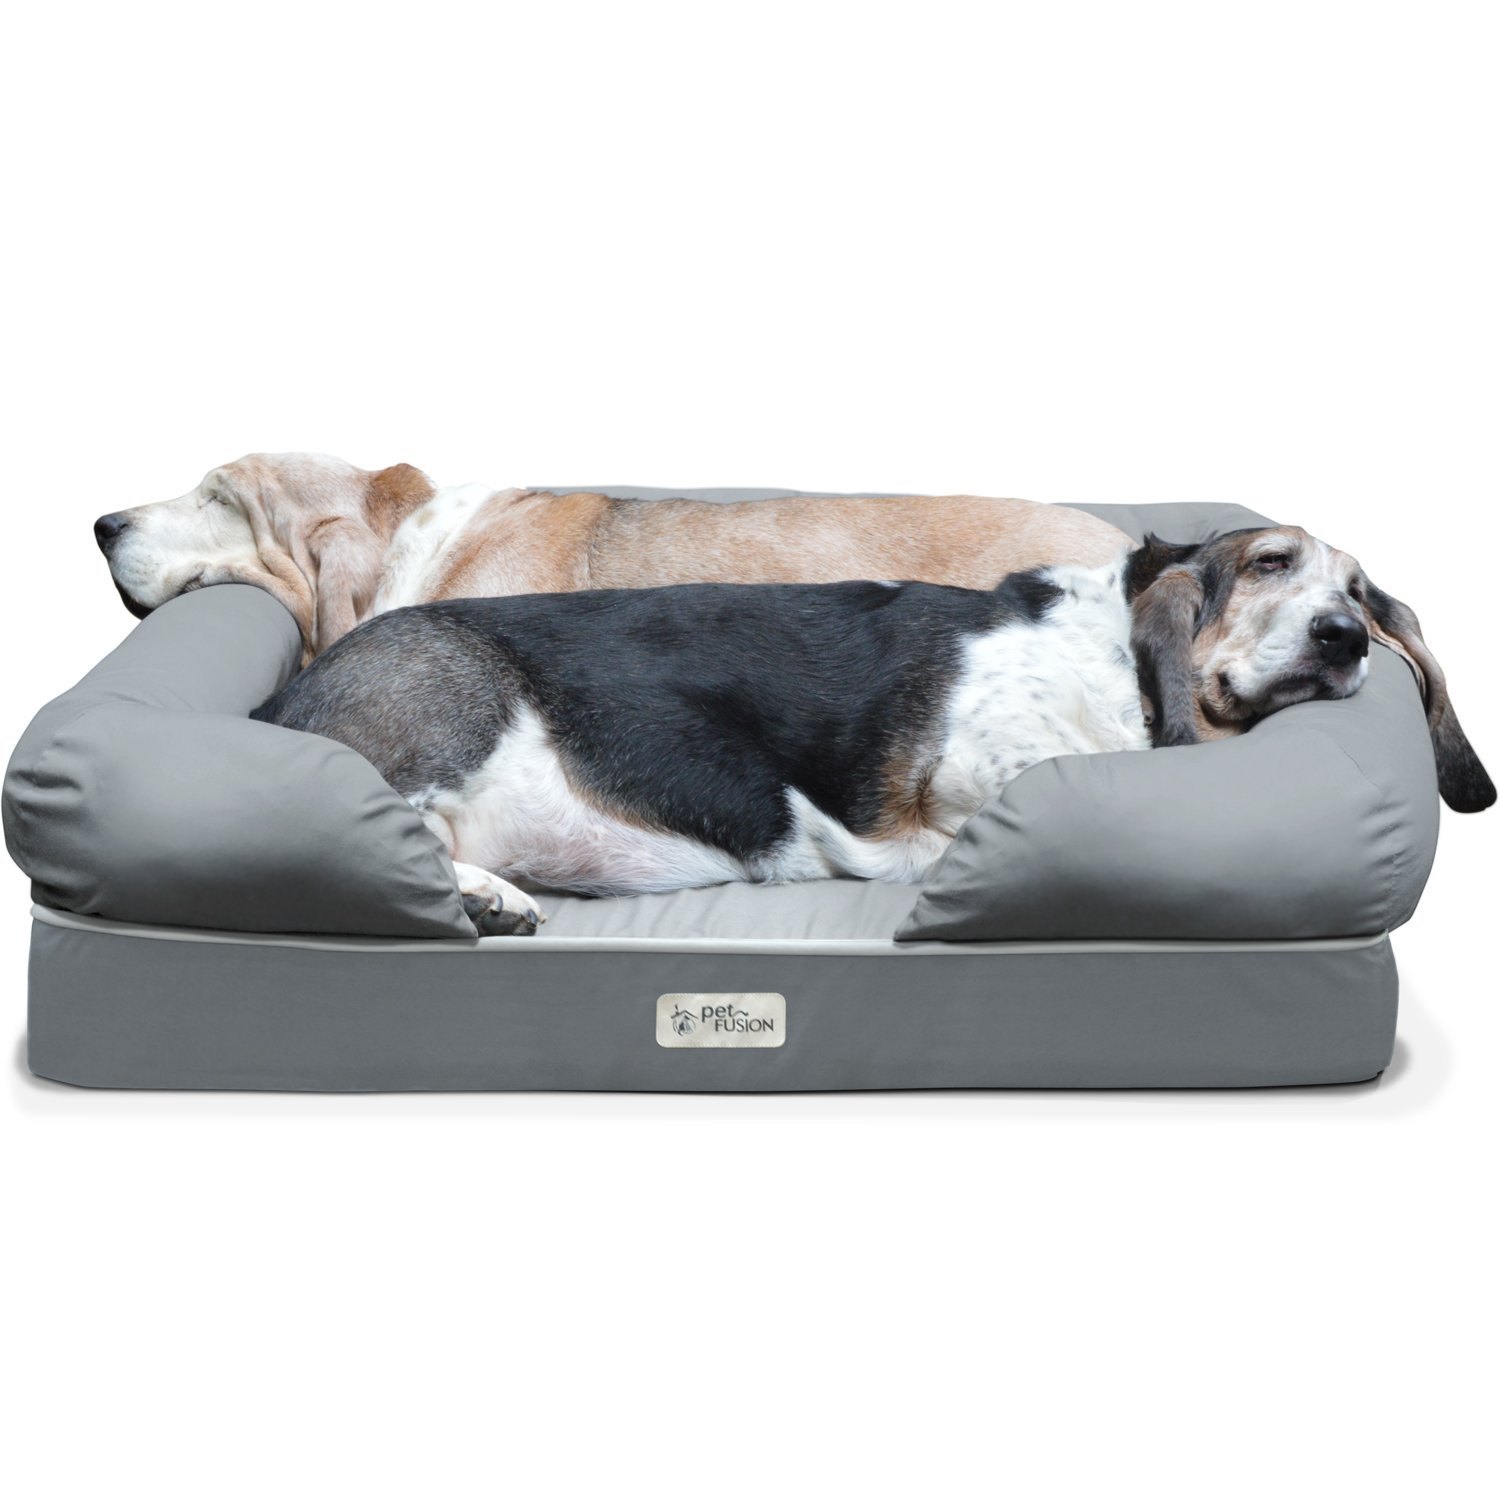 The Best Dog Beds for Design Lovers 2016: Cozy and Cute | Apartment ...